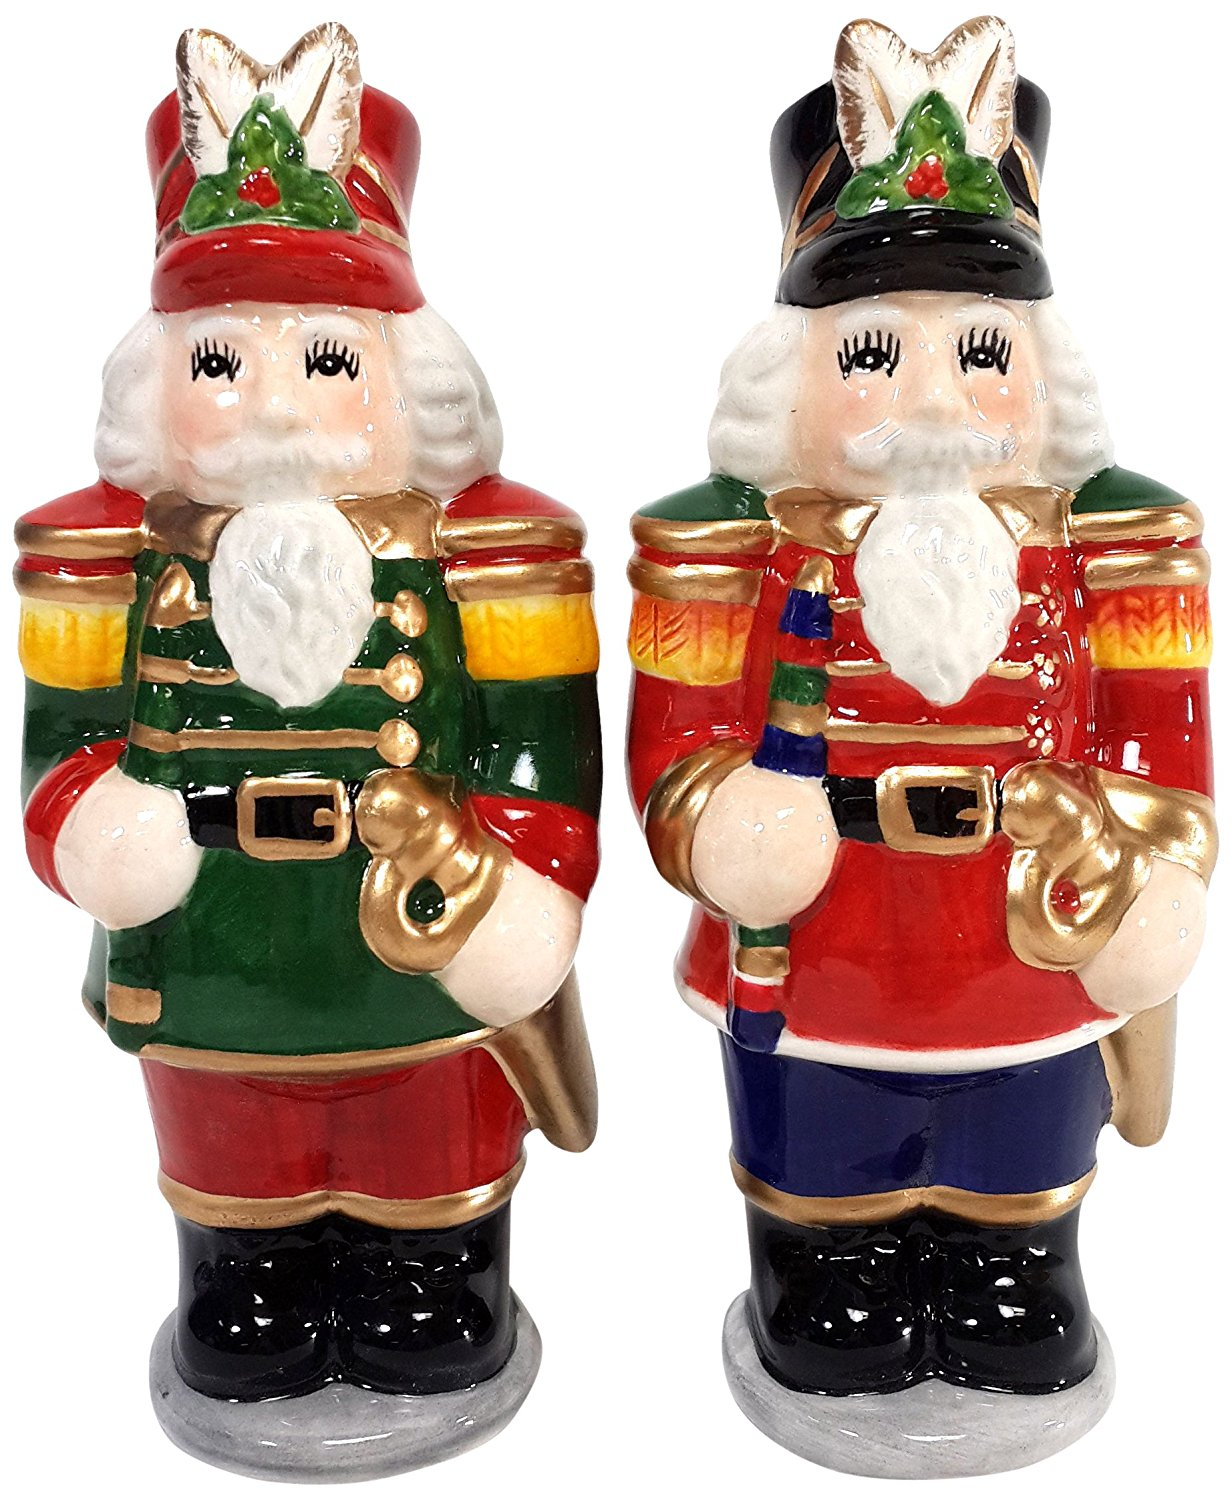 Cosmos Gifts Ceramic Nutcracker Salt and Pepper Set